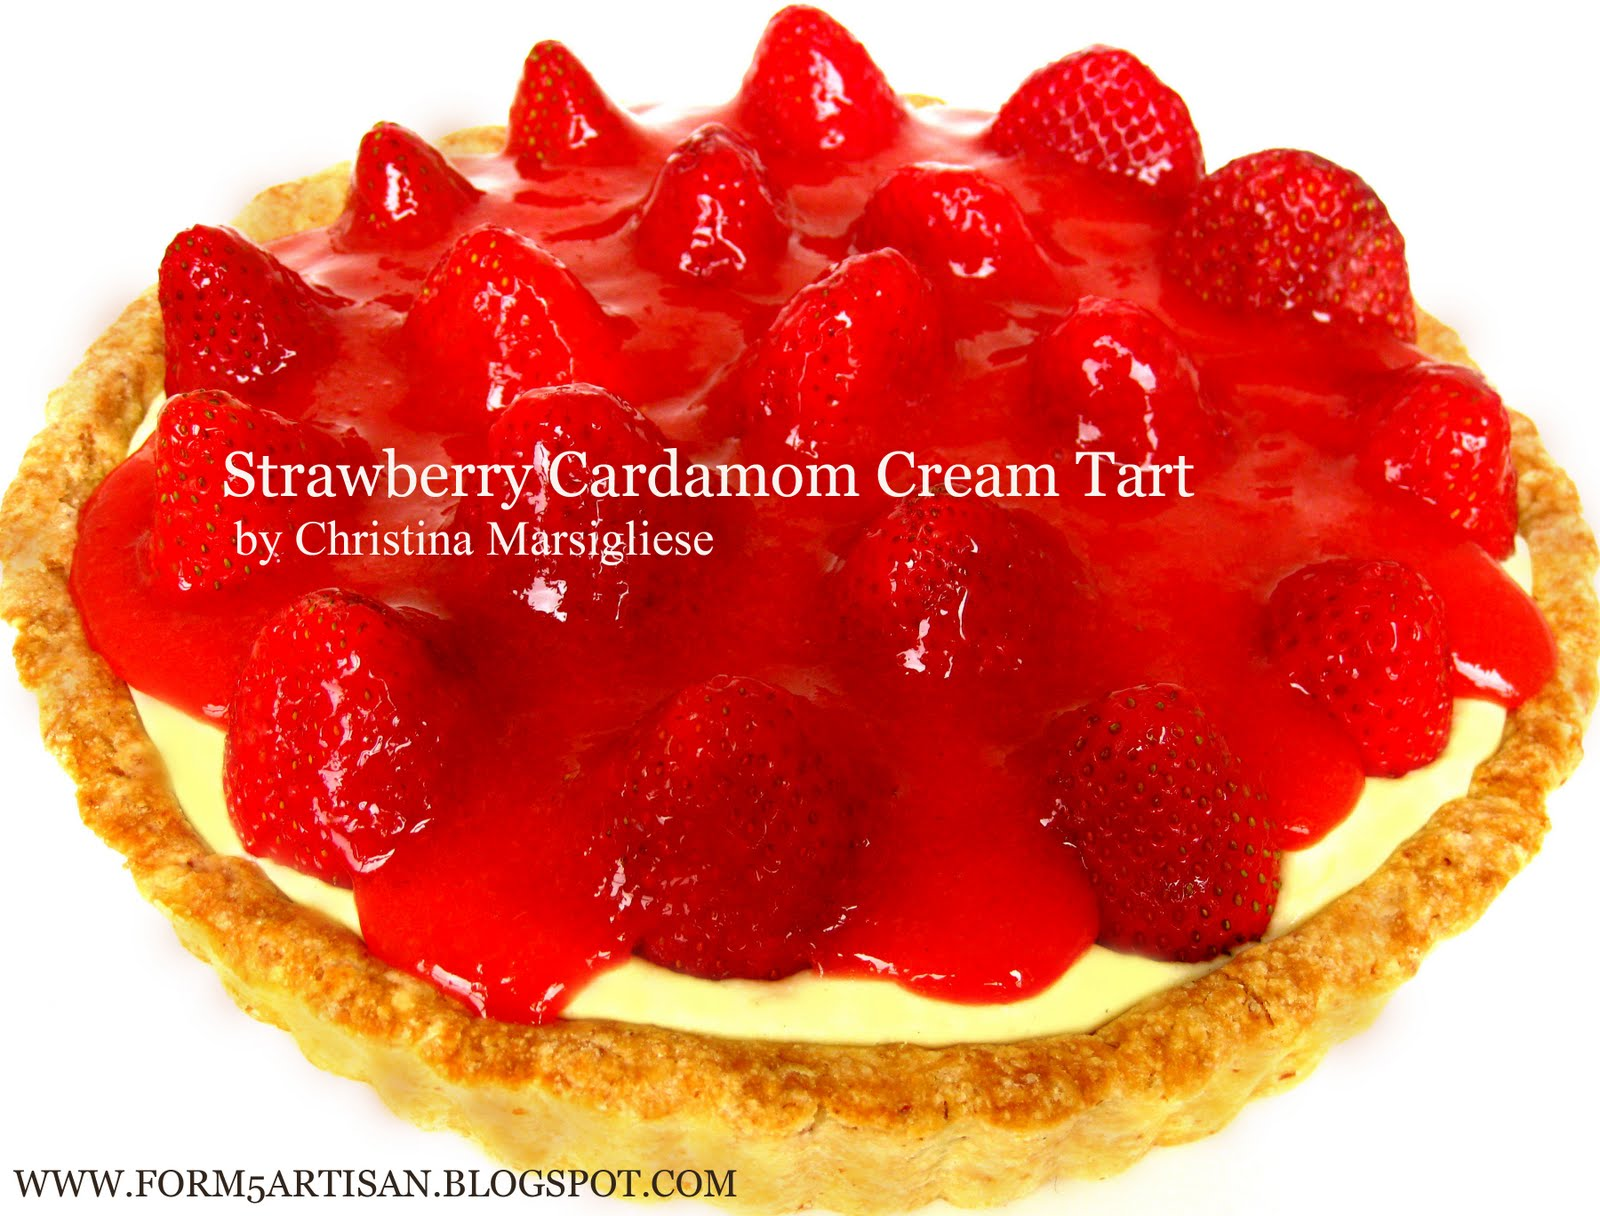 Scientifically Sweet: Strawberry Cardamom Cream Tart